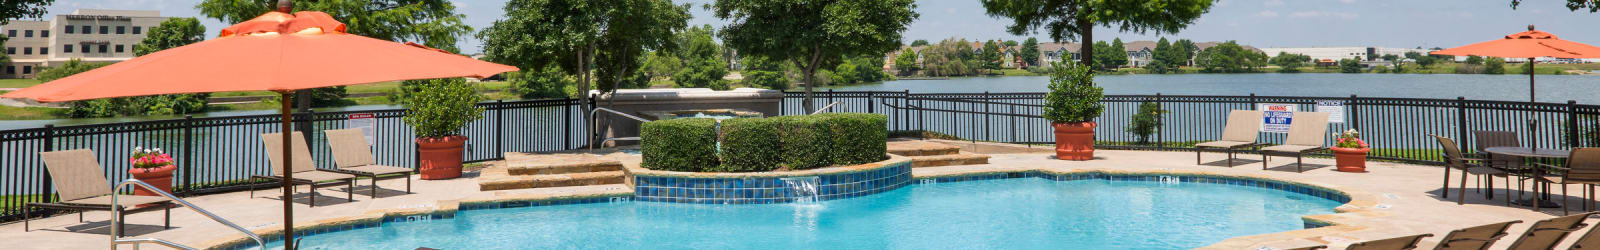 Apply at Crescent Cove at Lakepointe in Lewisville, Texas